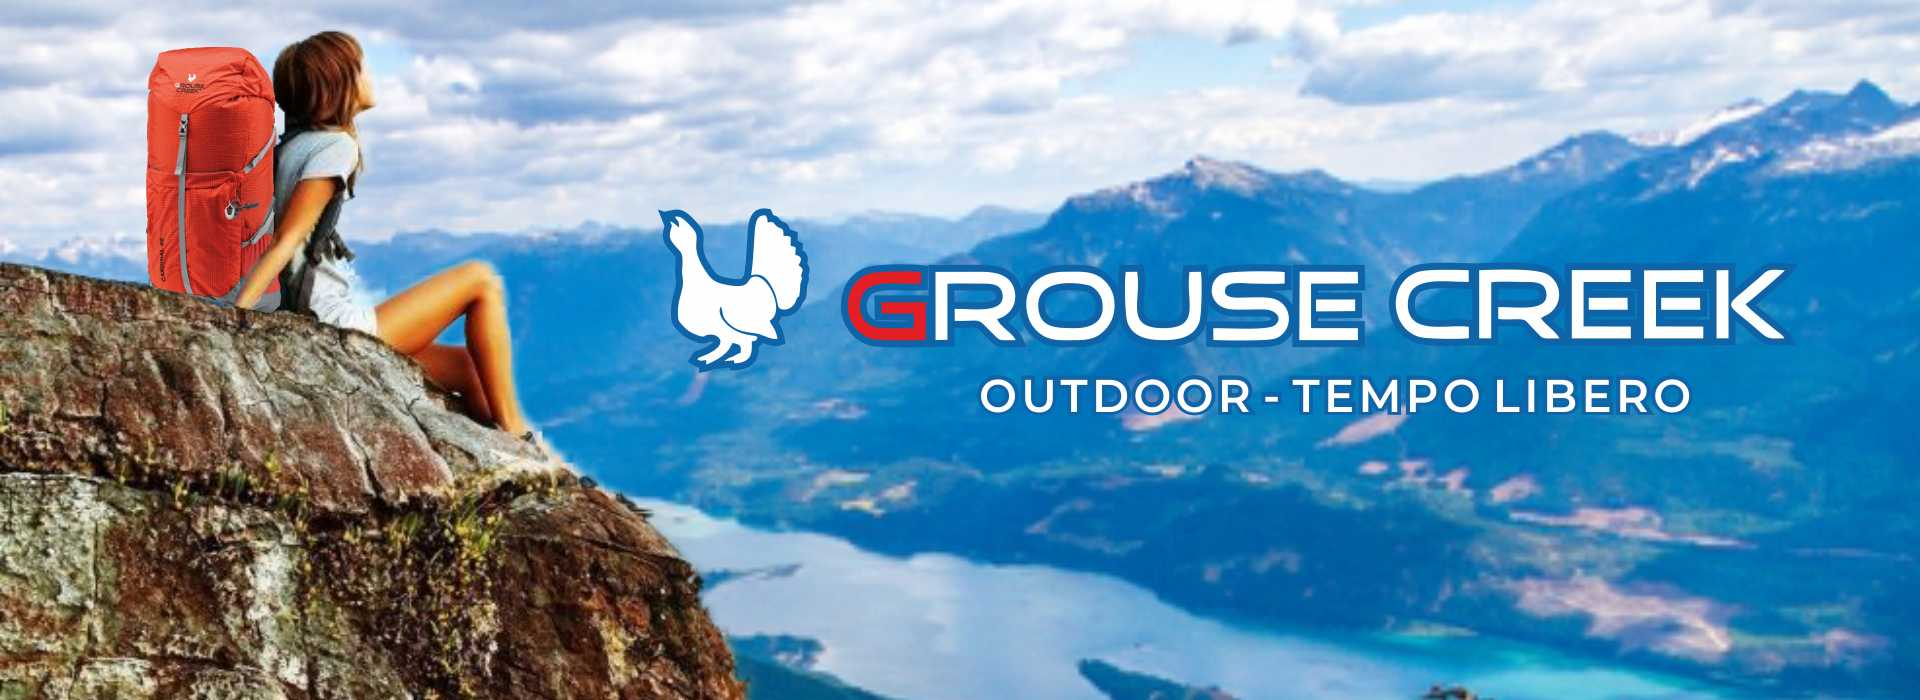 Grouse Creek, calzature e abbigliamento per l'outdoor